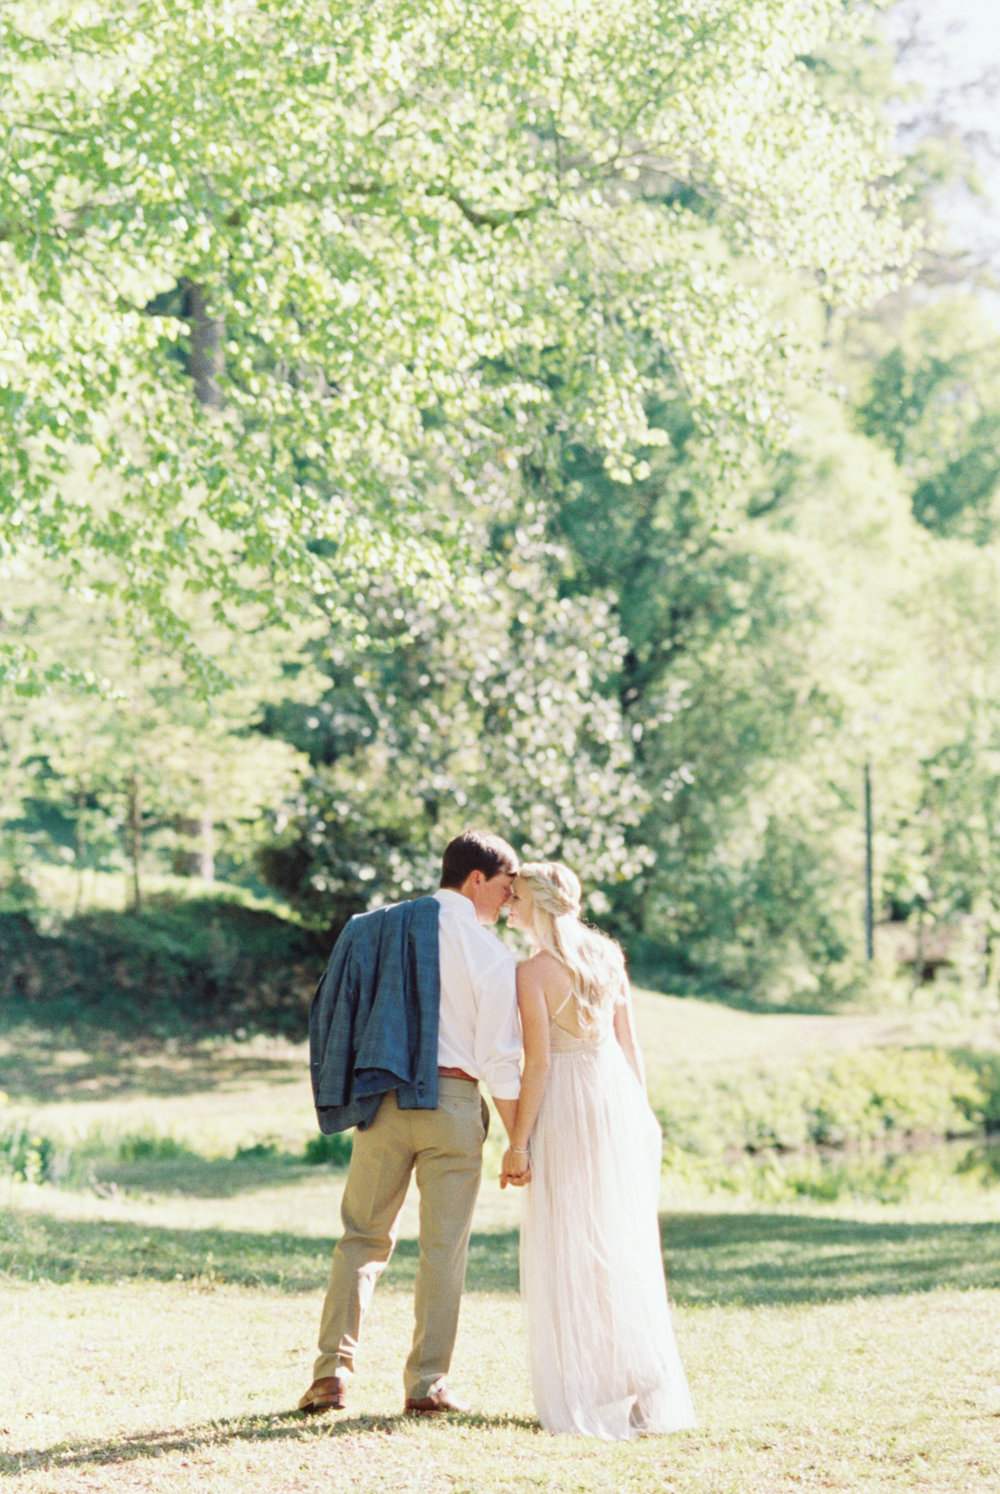 Erin_Johnny_Engagement_Dunaway_Gardens_Georgia_Film_Fallen_Photography-82.JPG